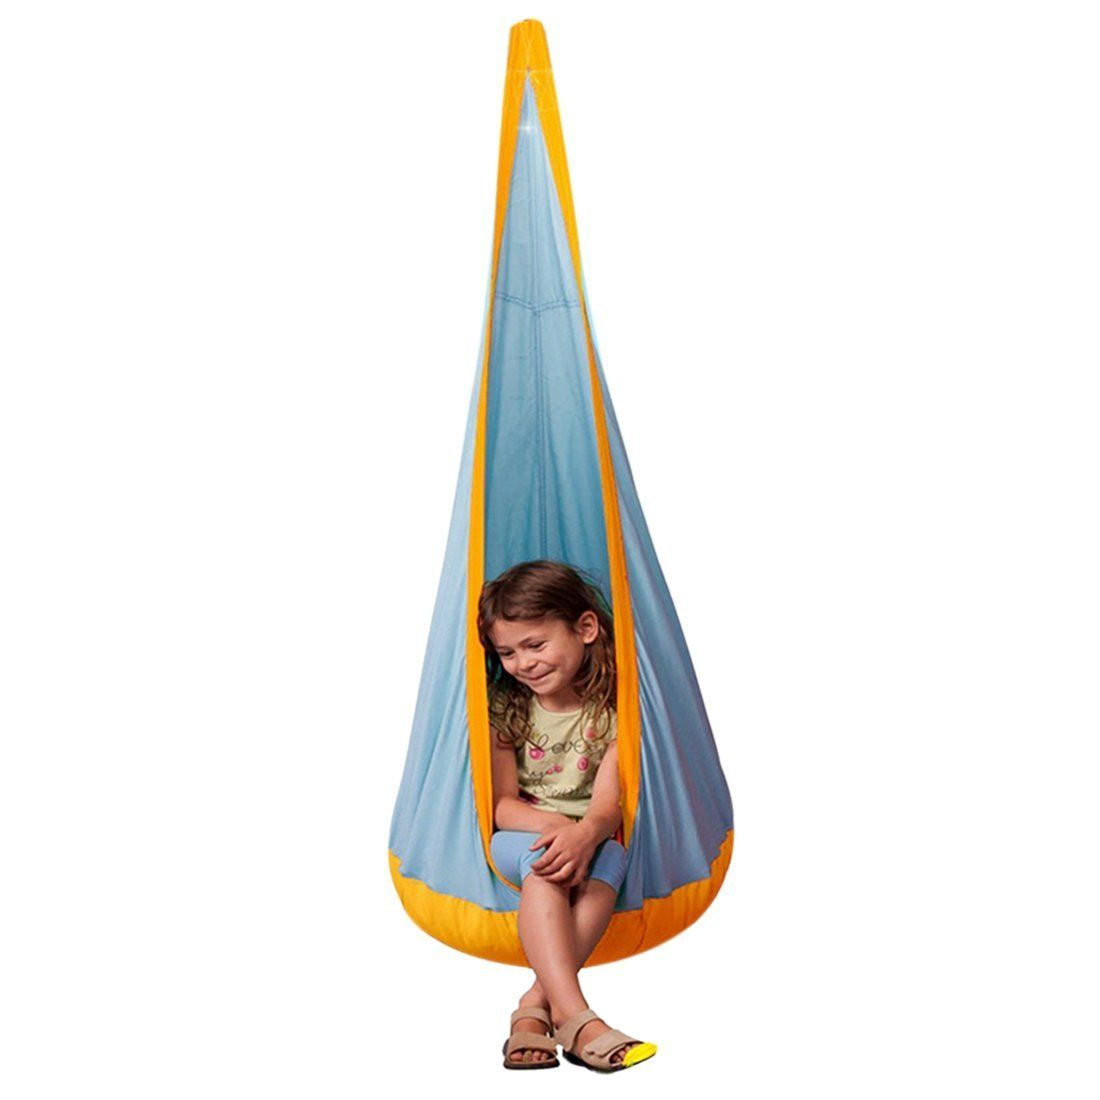 jiyaru hammock pod kids swing children u0027s hammock chair nook hanging seat hammock nest for indoor and jiyaru hammock pod kids swing children u0027s hammock chair nook      rh   pinterest